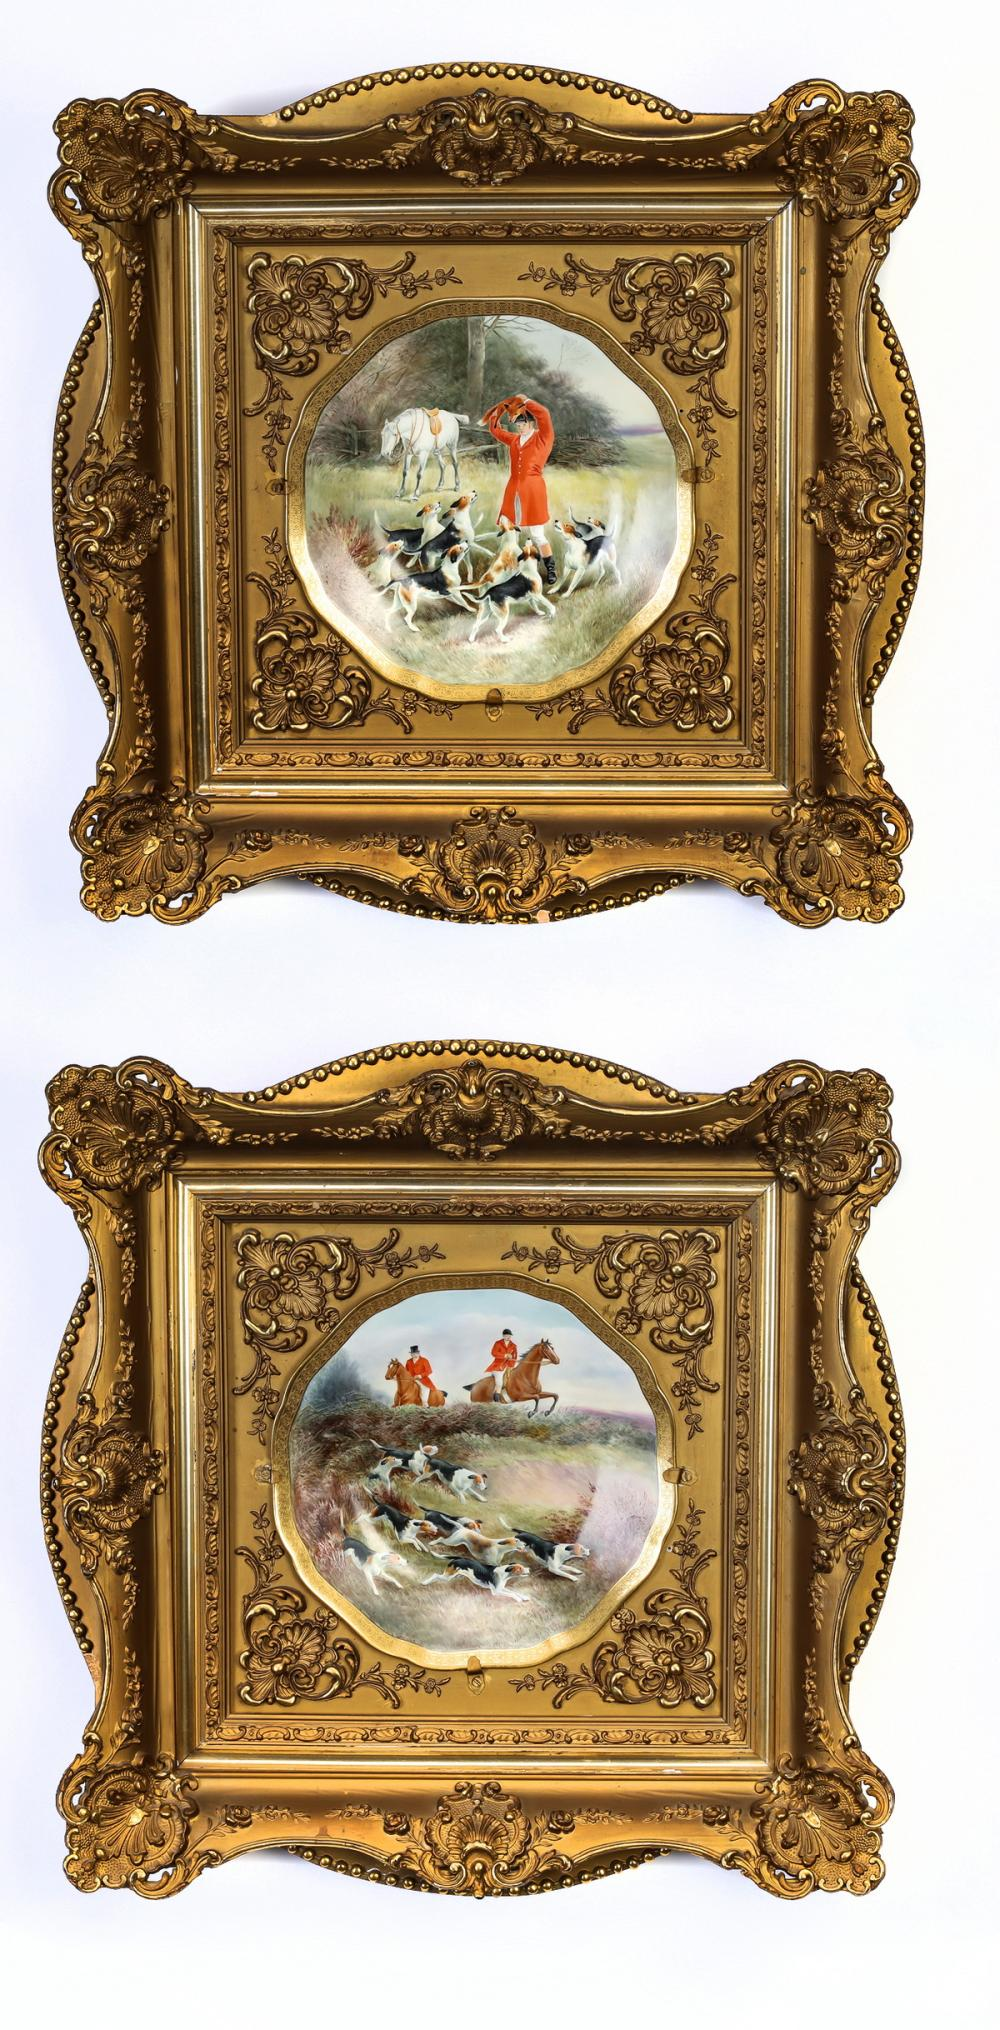 Early 20th c. hunt scene cabinet plates by Cauldon